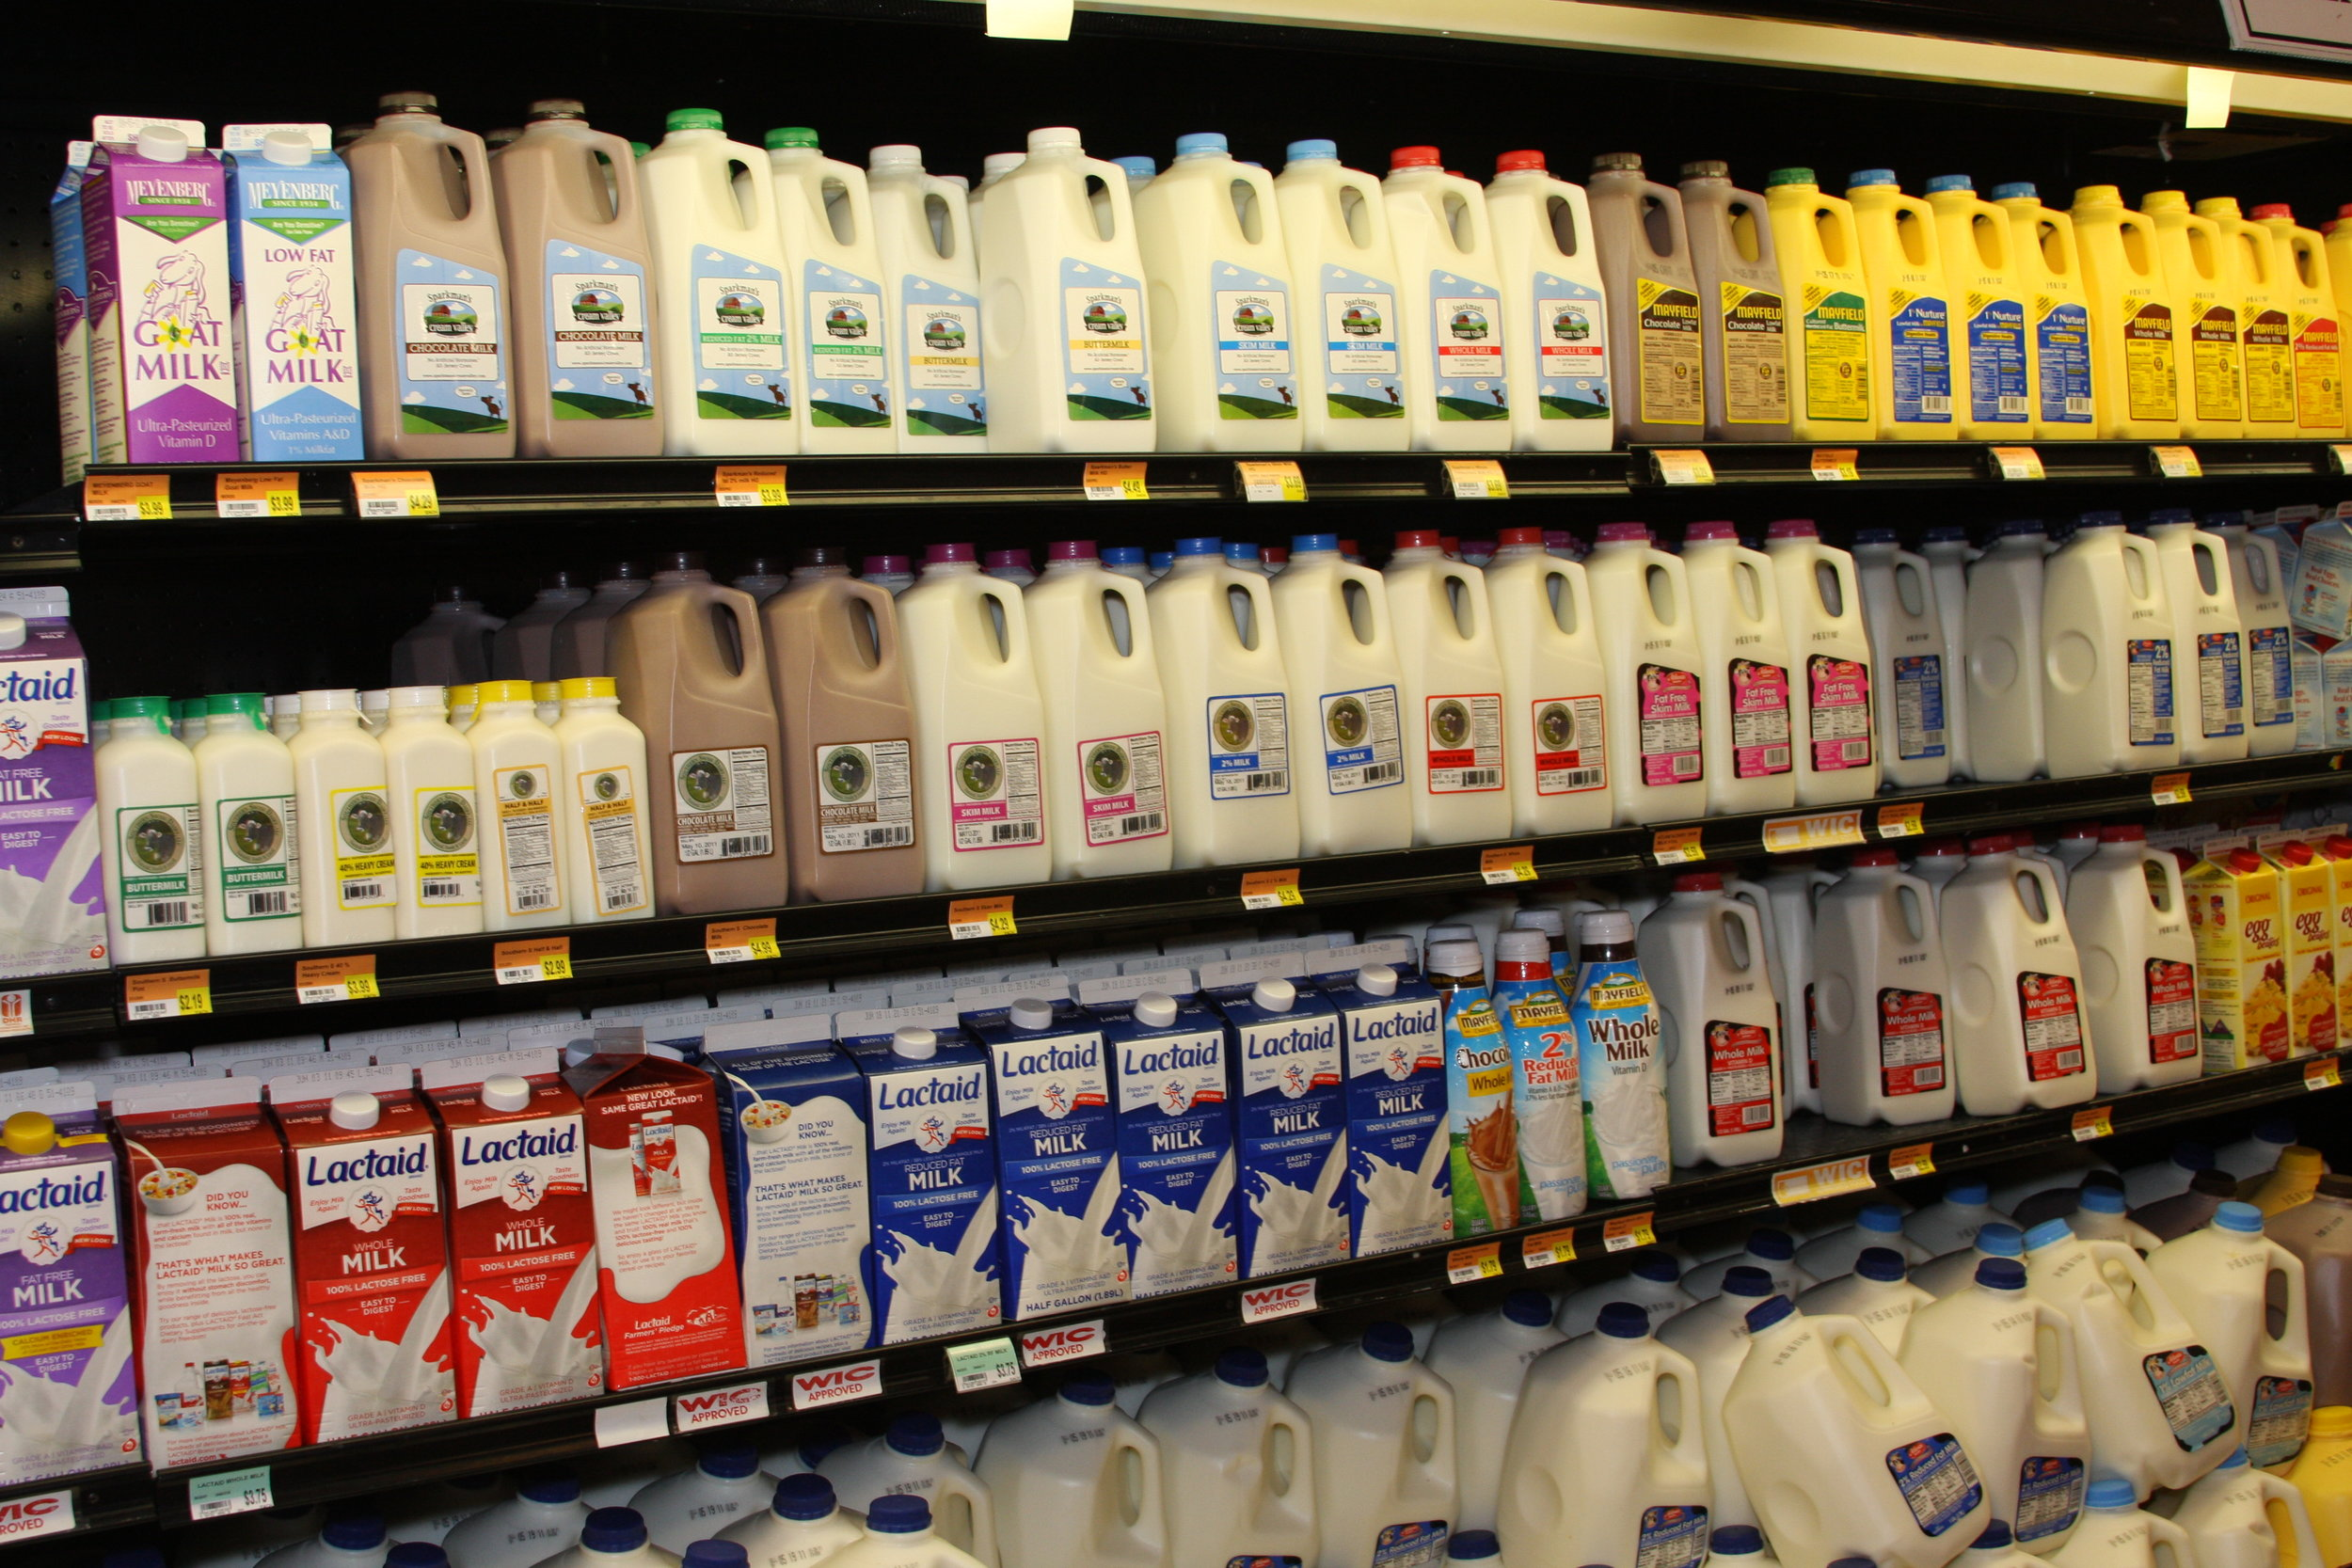 Our modern Western diet, rich in dairy products, took some evolving to get used to.   April Sorrow/Flickr  (CC BY-NC 2.0)